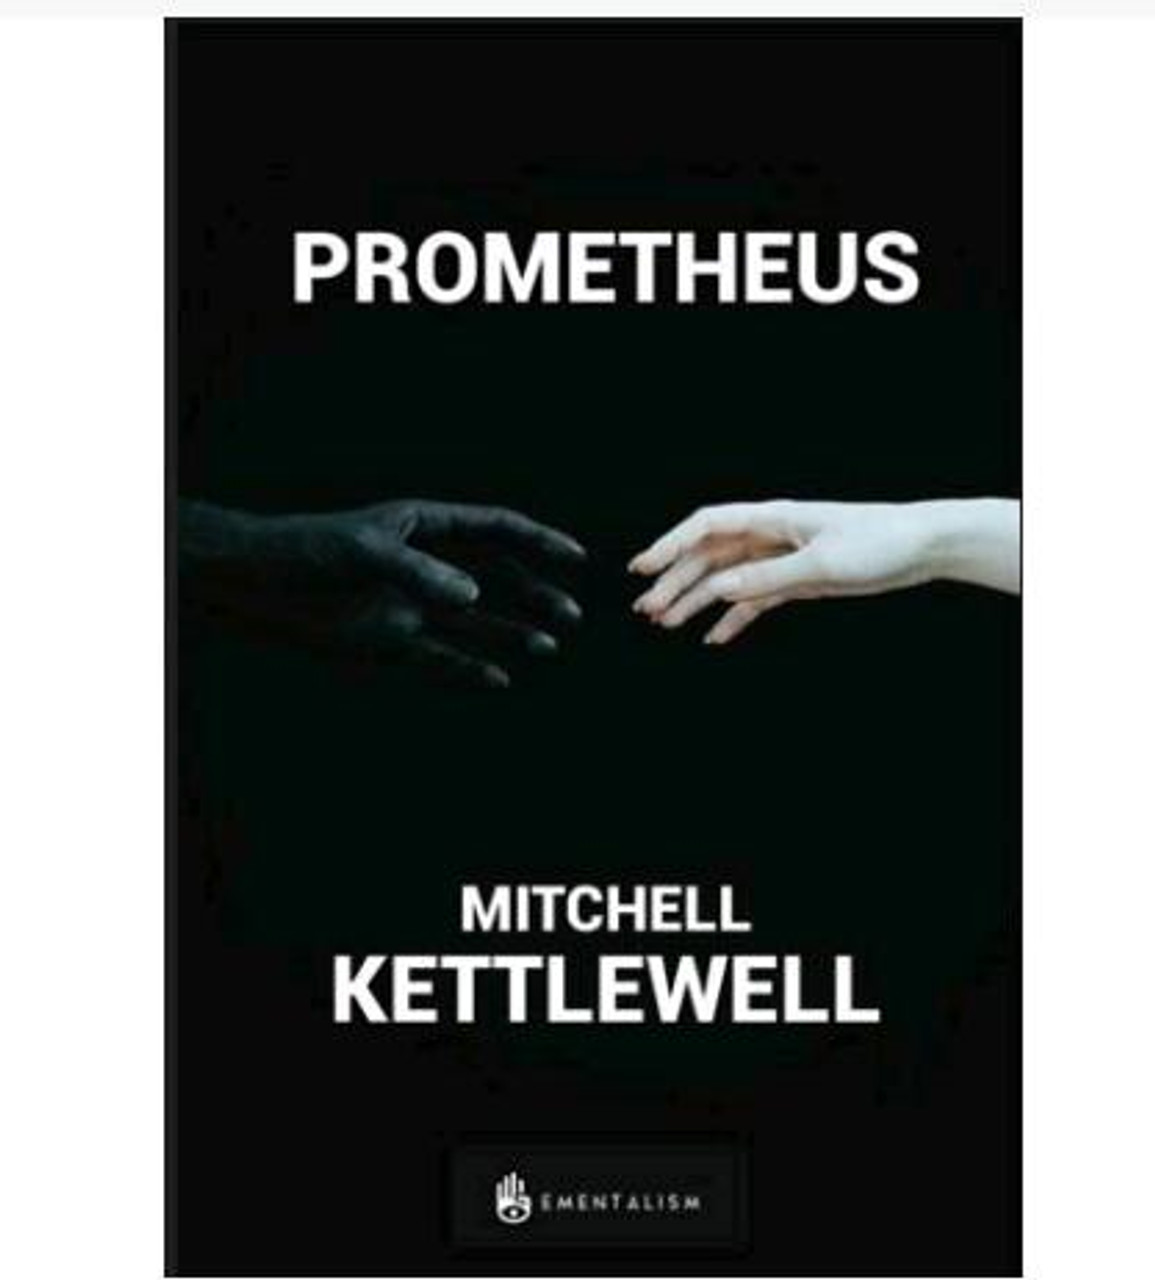 Prometheus By Mitchell Kettlewell - smmagic